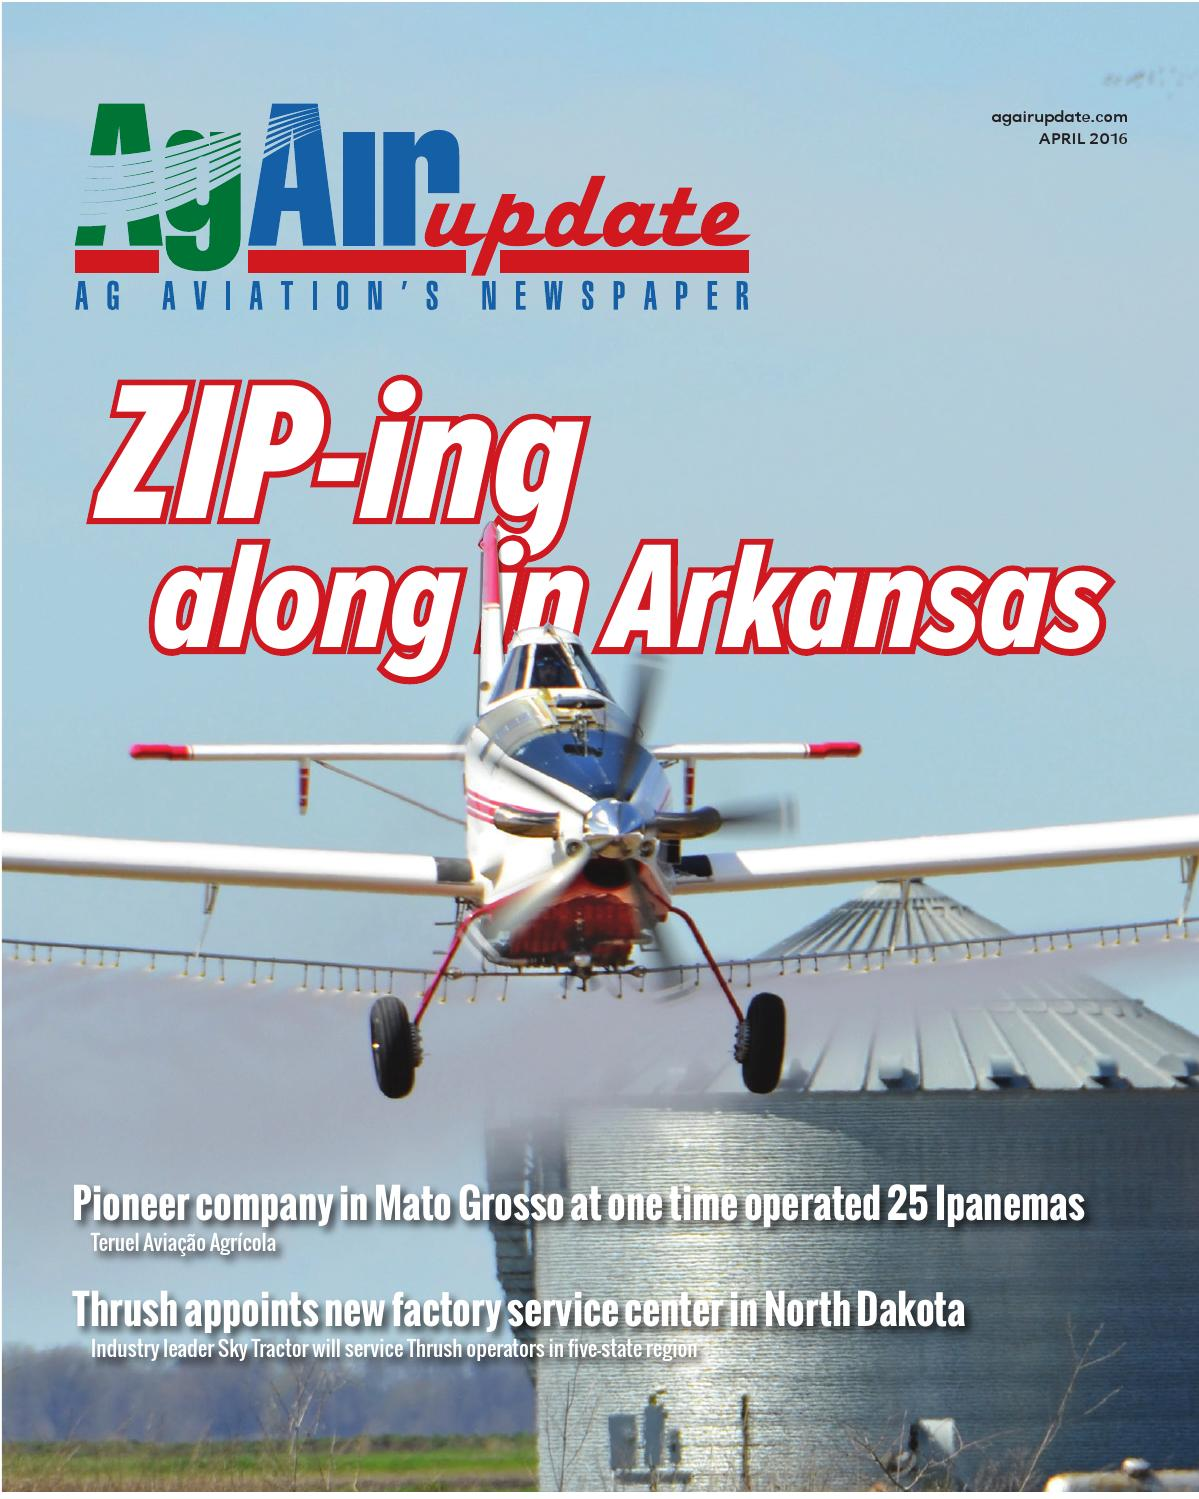 April 2016 Us Edition In English By Agair Update Issuu Make Yourself Visible To Others When Your Flying Strobe Lights